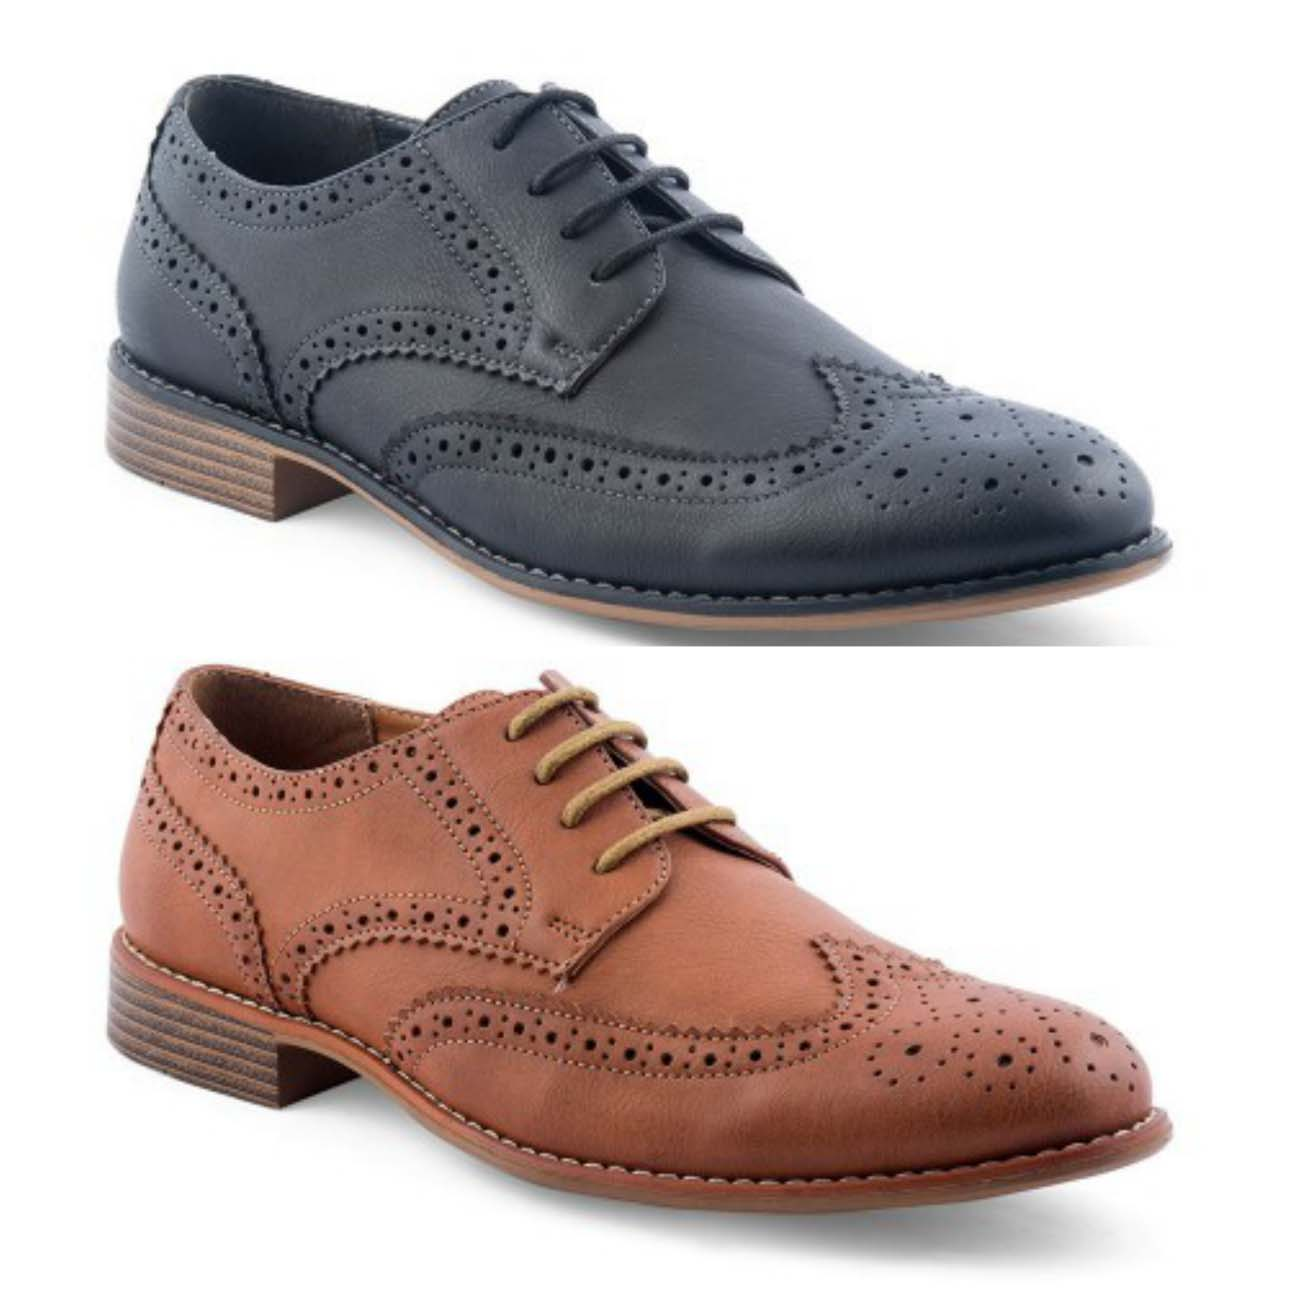 Men shoe designs